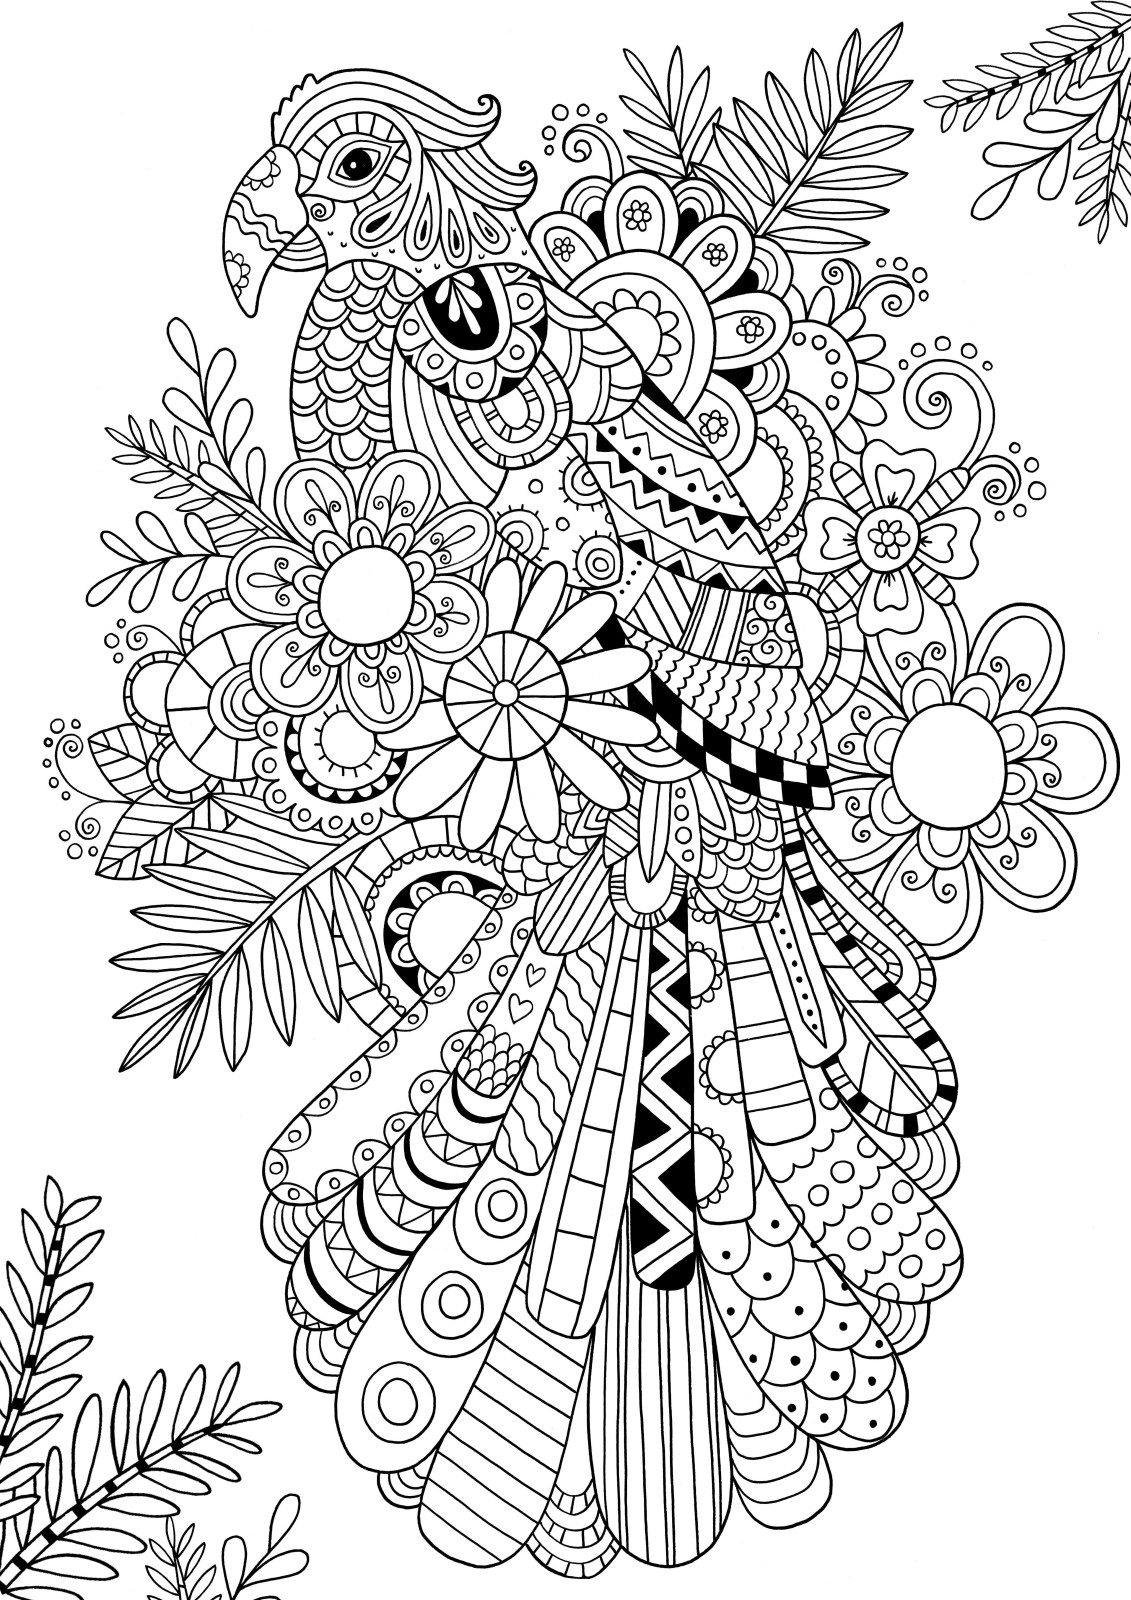 zentangle patterns coloring pages how to draw zentangle patterns hobbycraft blog zentangle patterns coloring pages